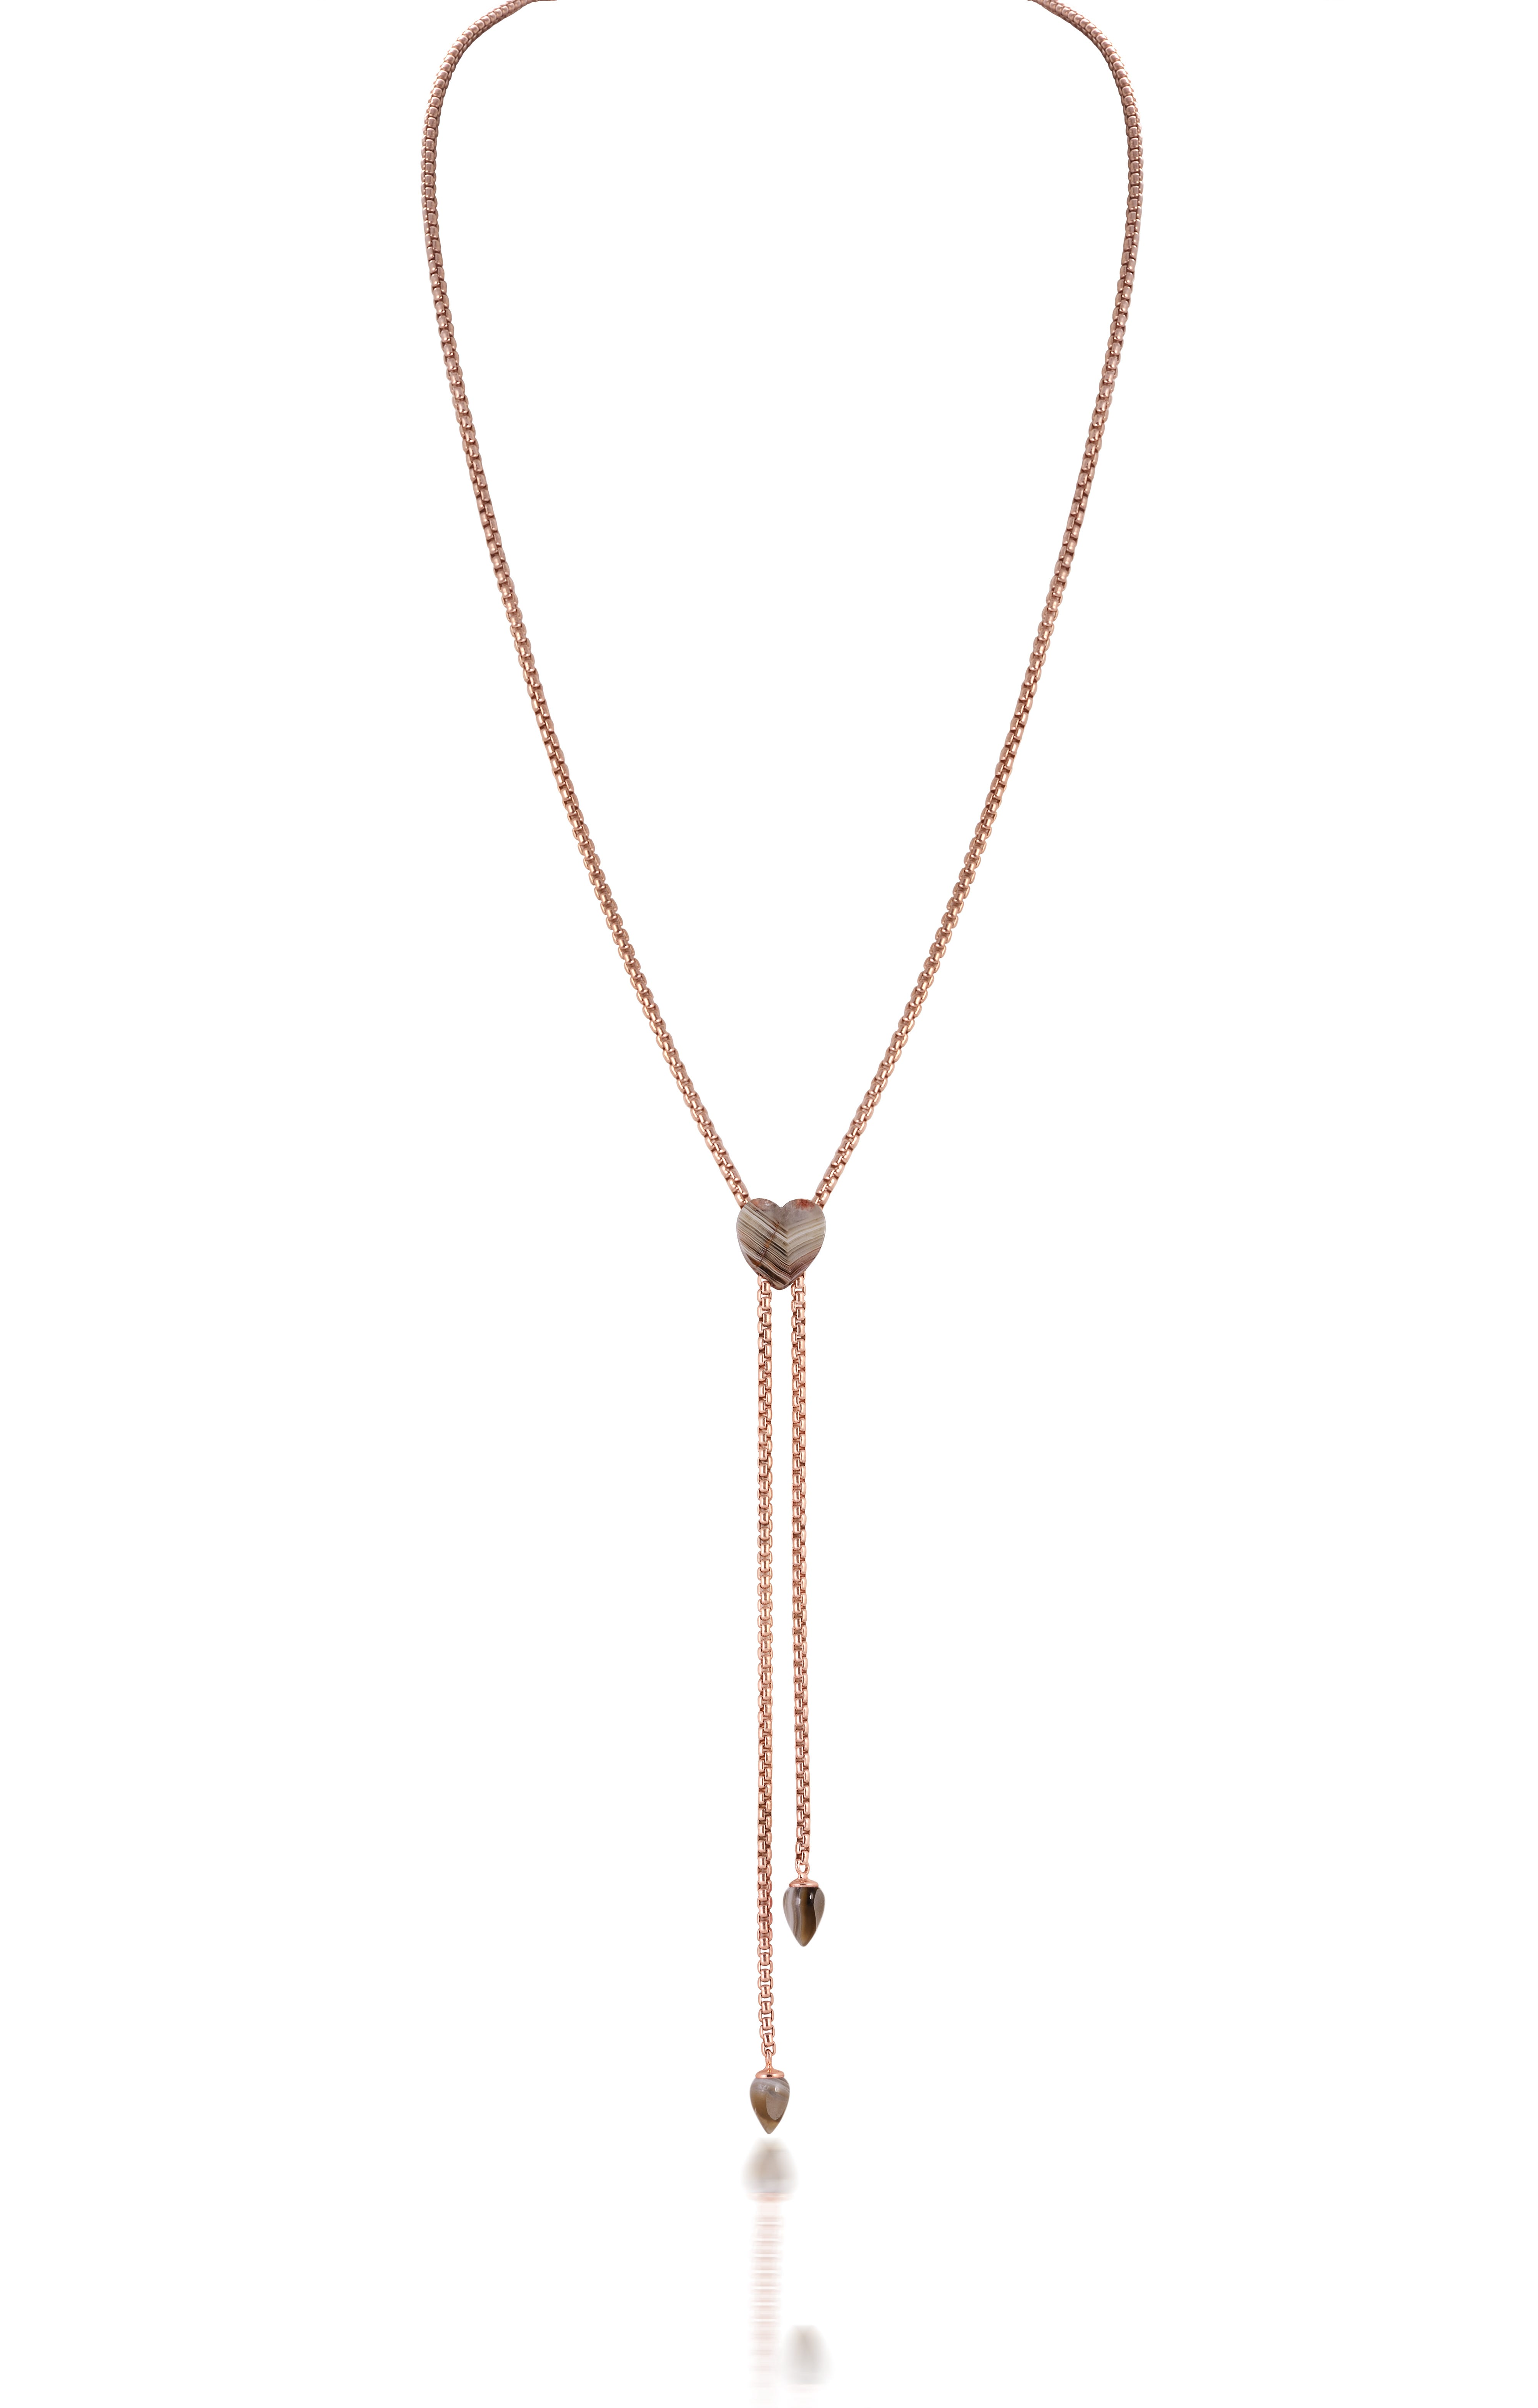 Lace Agate Adjustable Necklace in Sterling Silver & 14k Rose Gold Plating